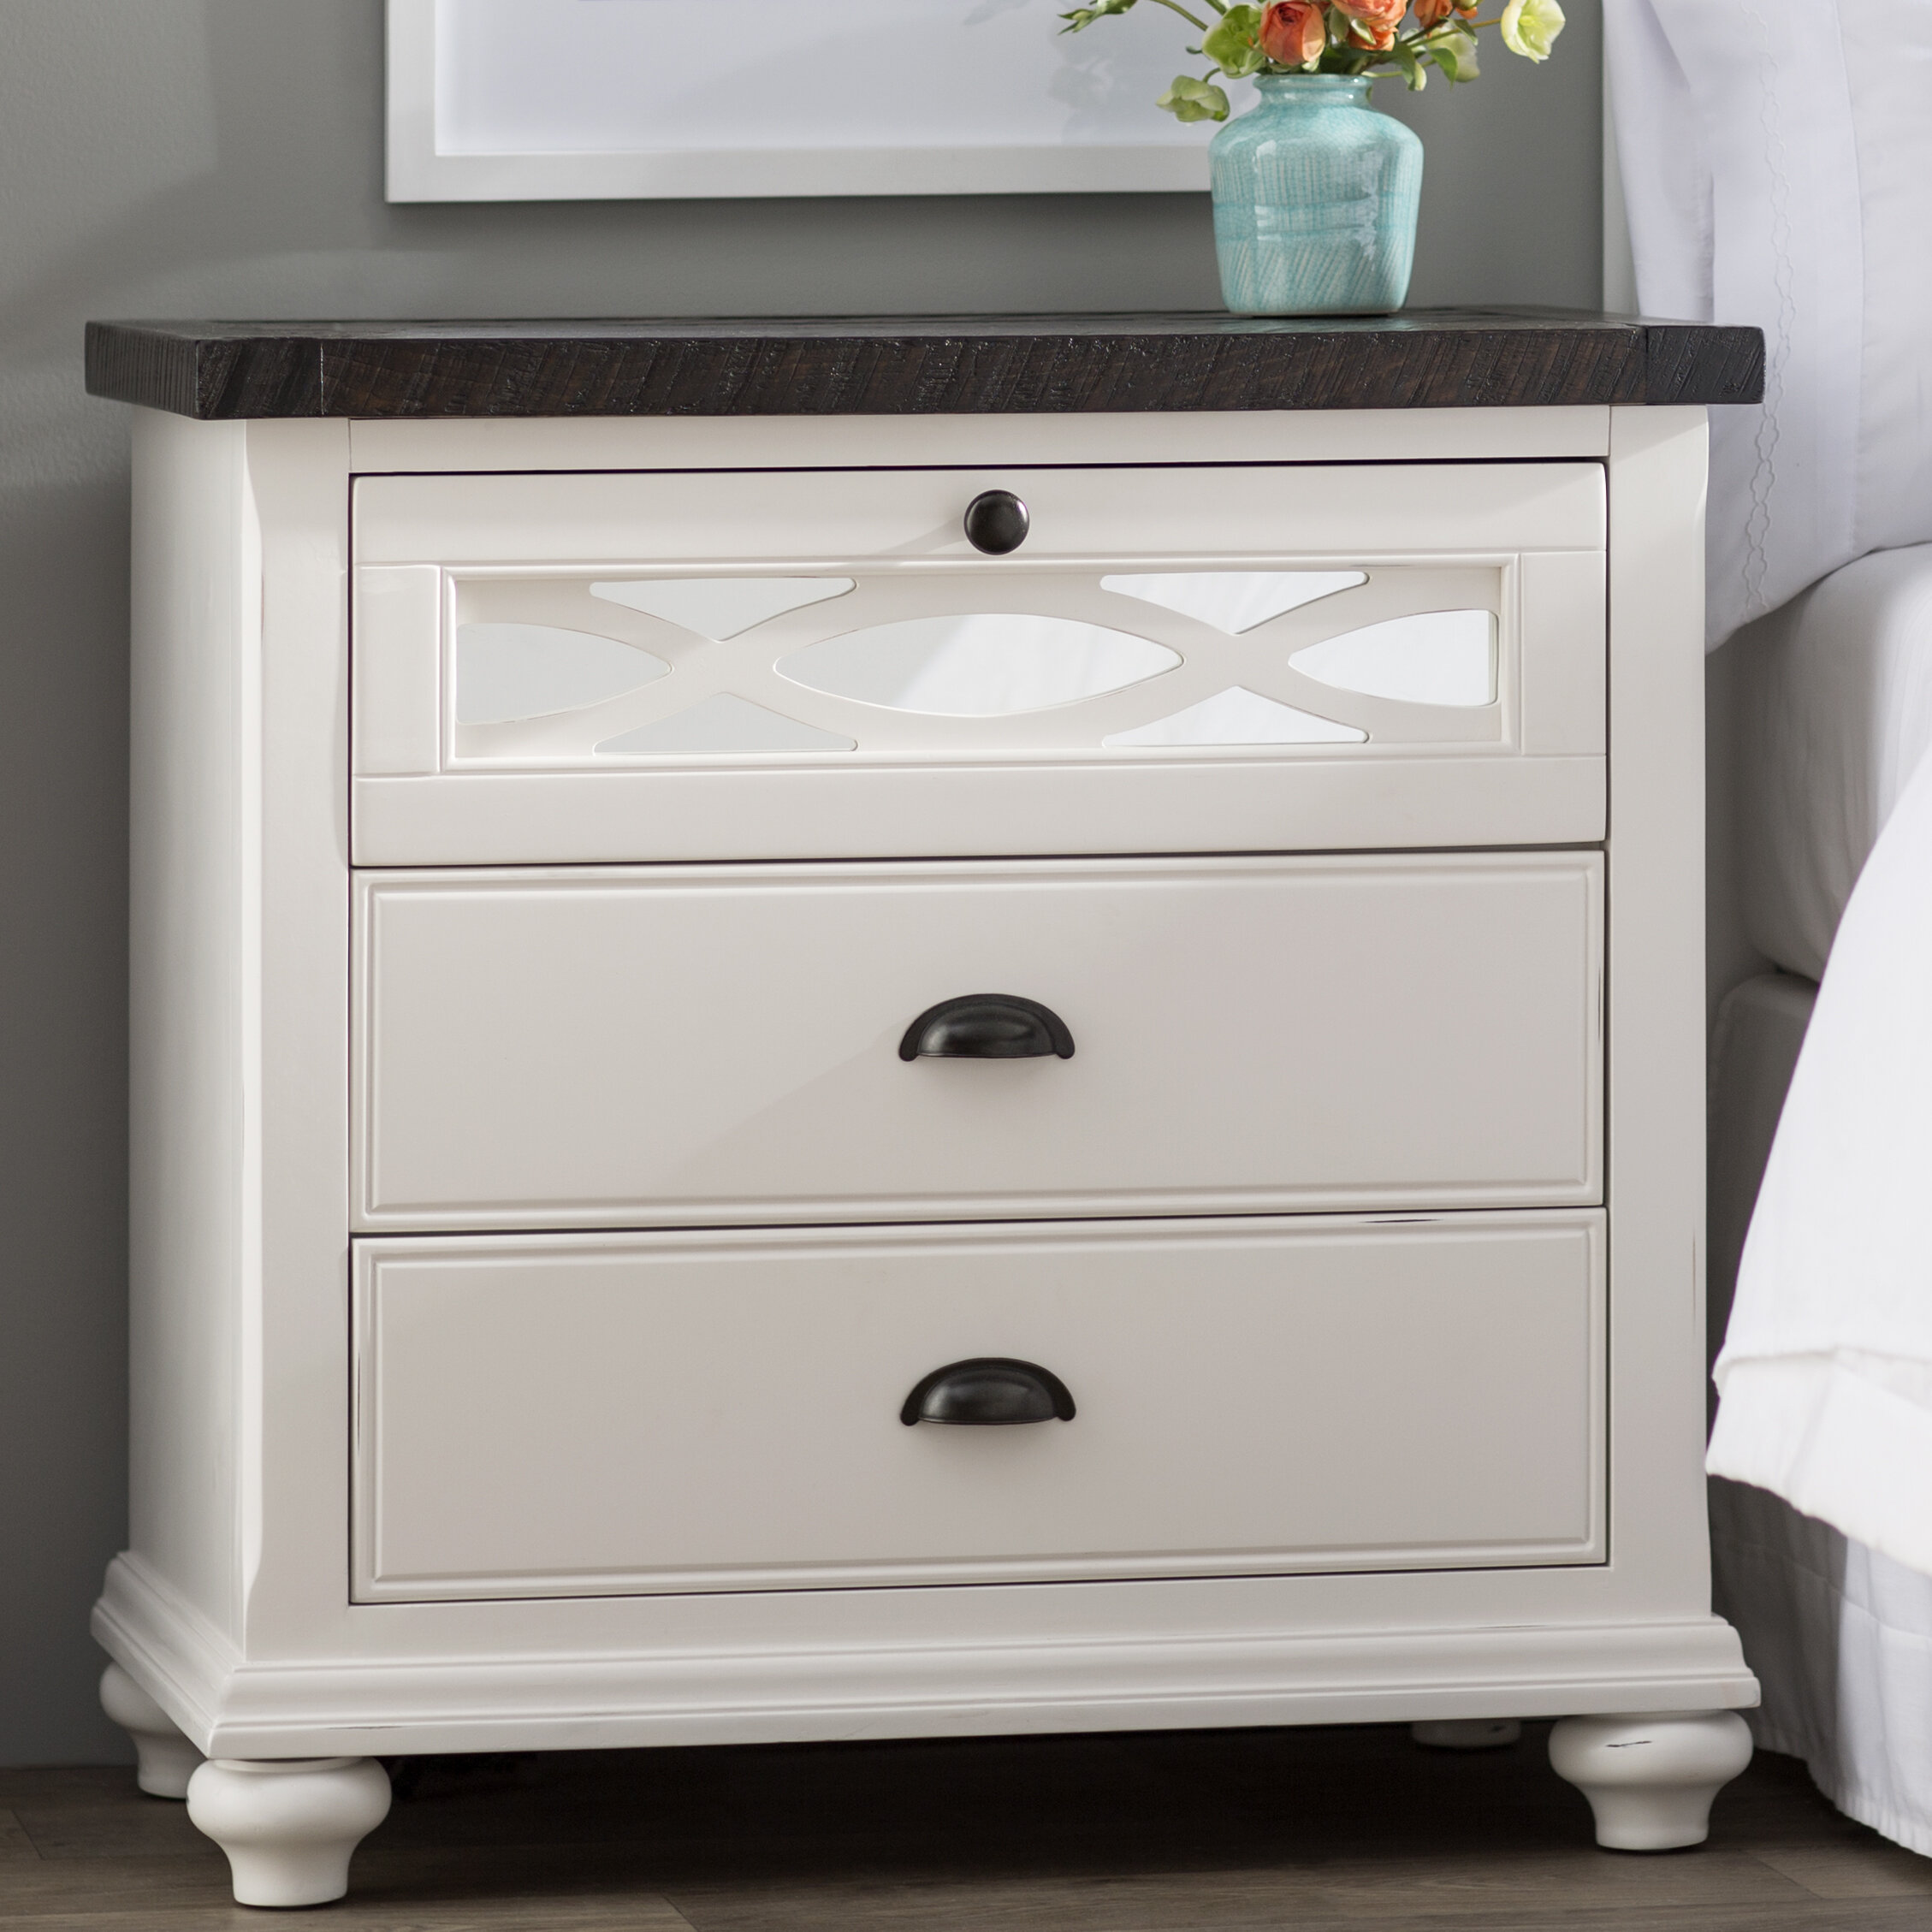 table chic nightstand white bedside shabby zoom bedroom fleur drawer